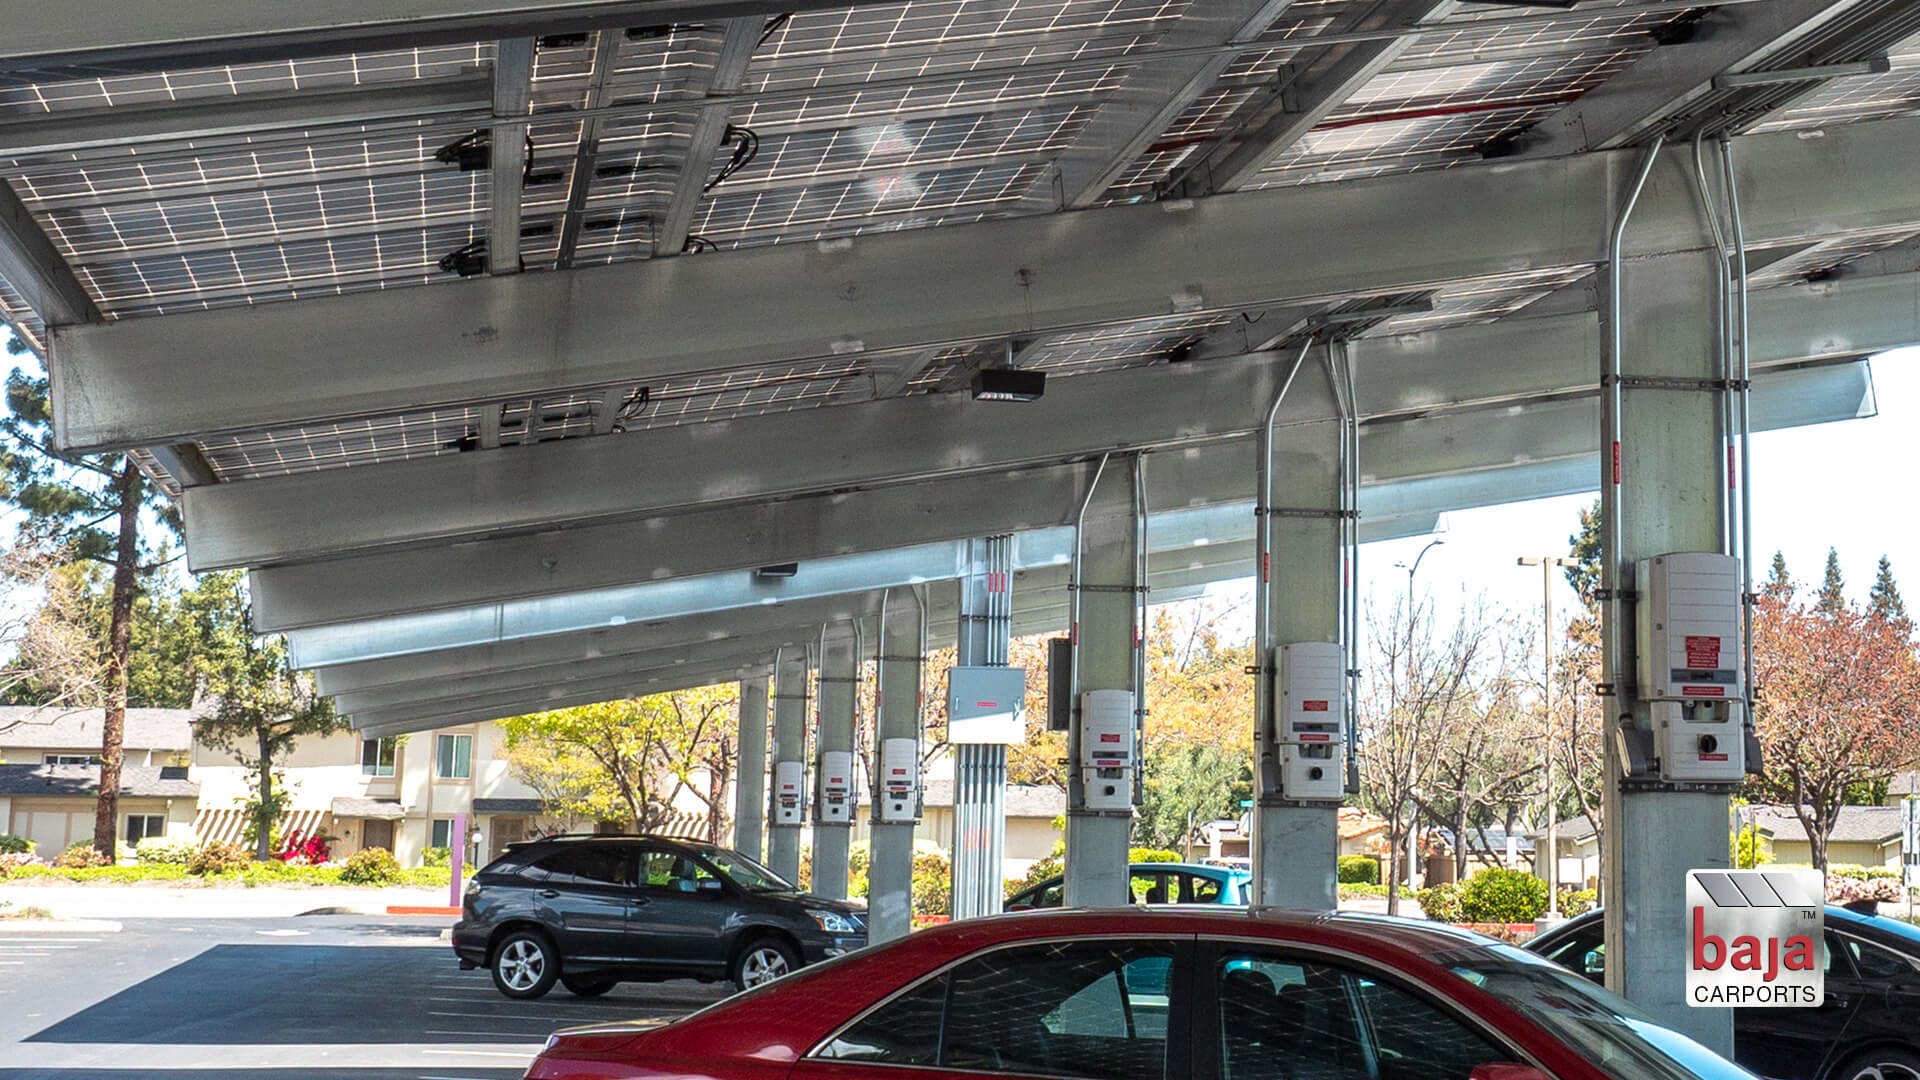 church in sunnyvales cuts electrical cost by using solar carports